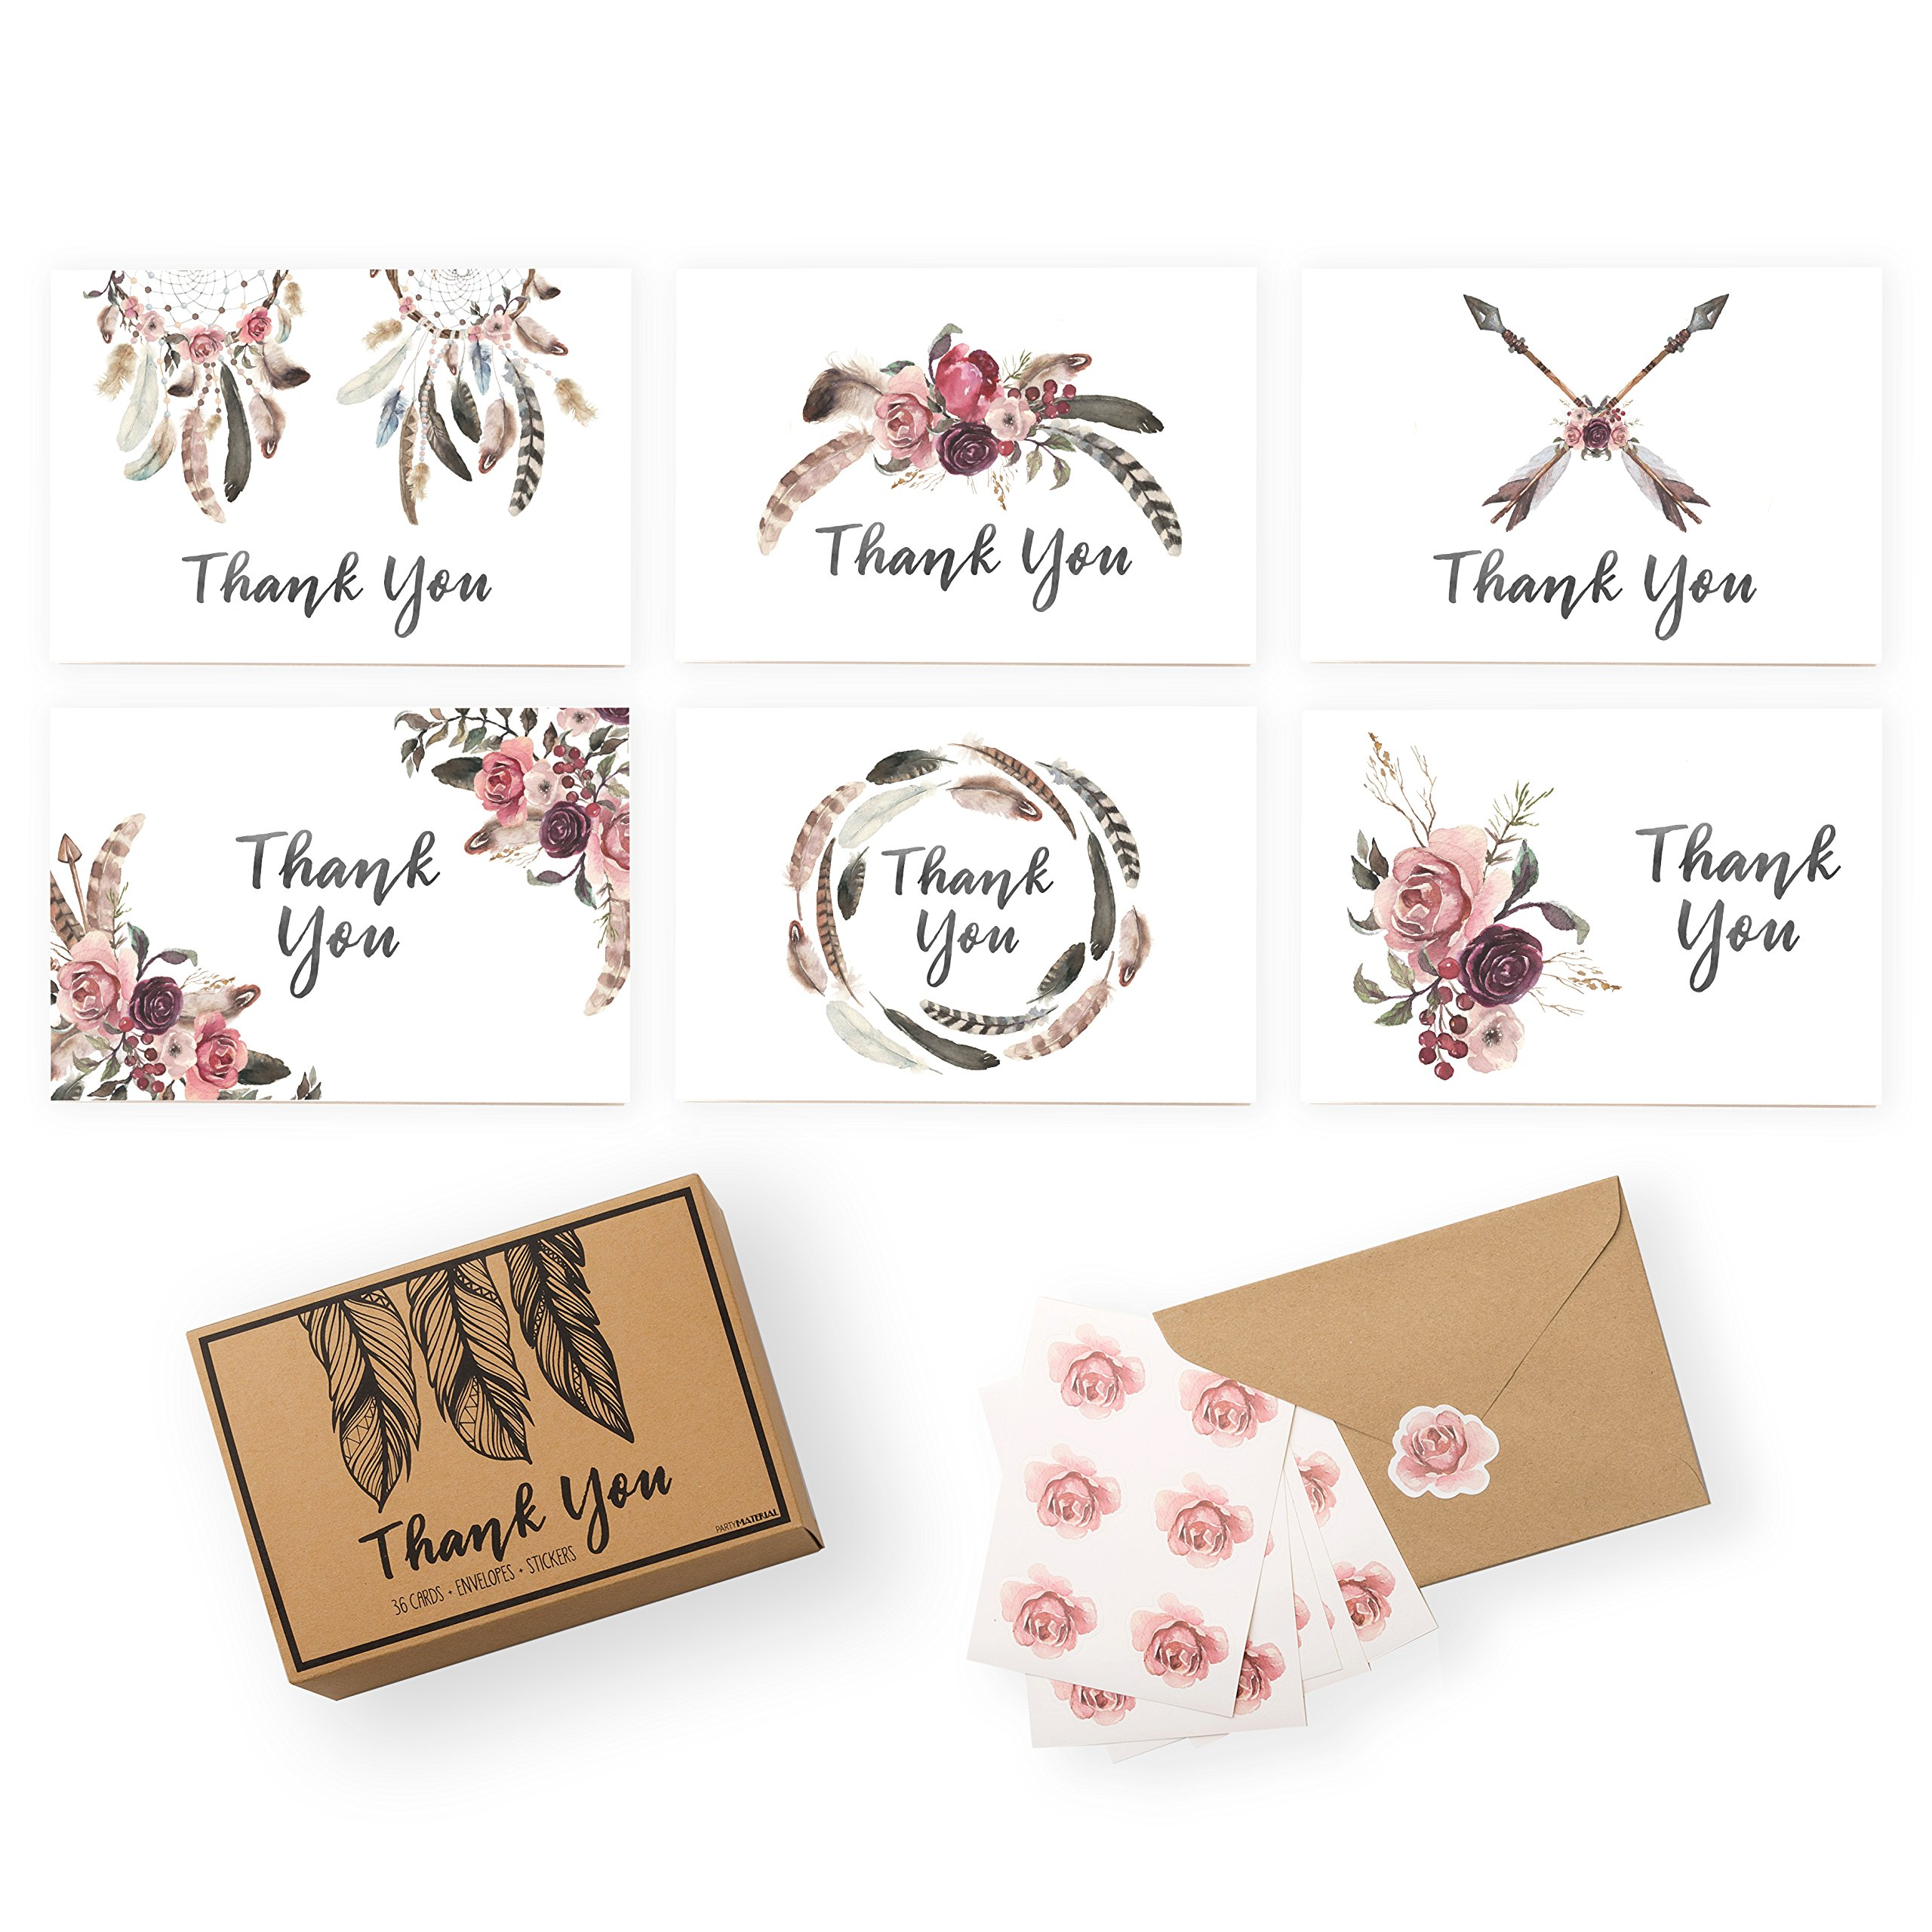 xo fetti rustic thank you cards baby shower wedding business set